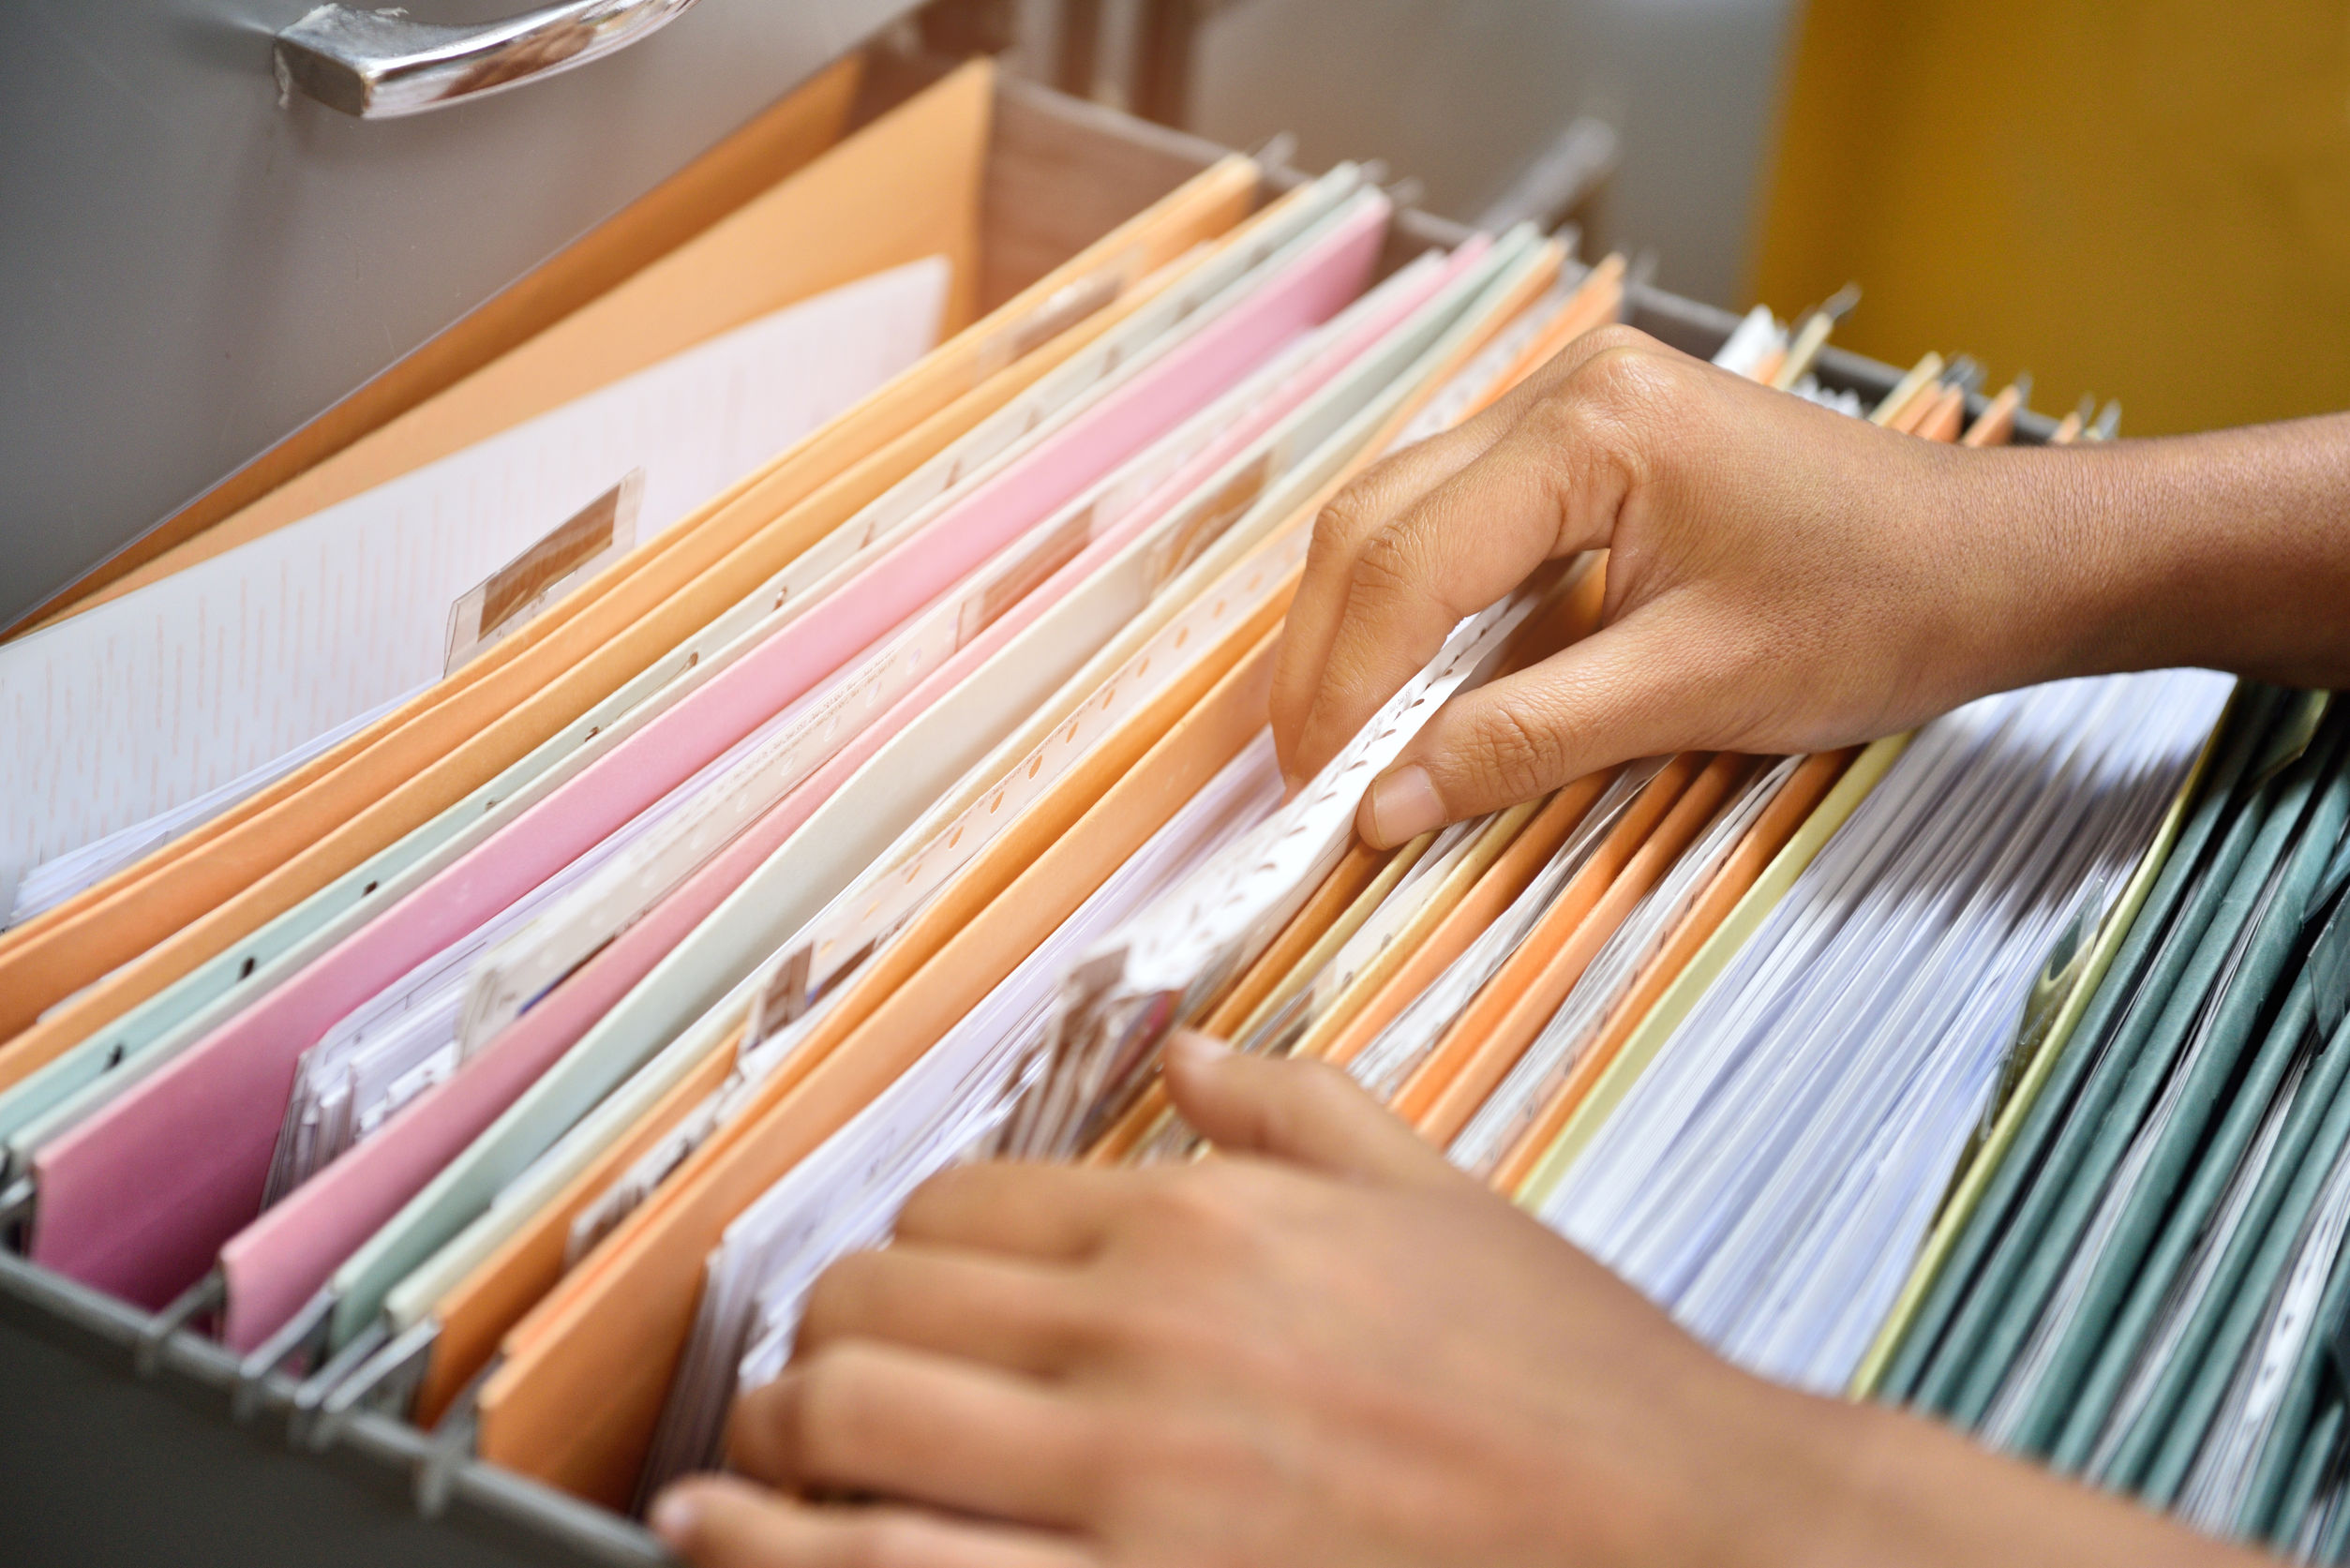 Hands searching through file cabinet and folders